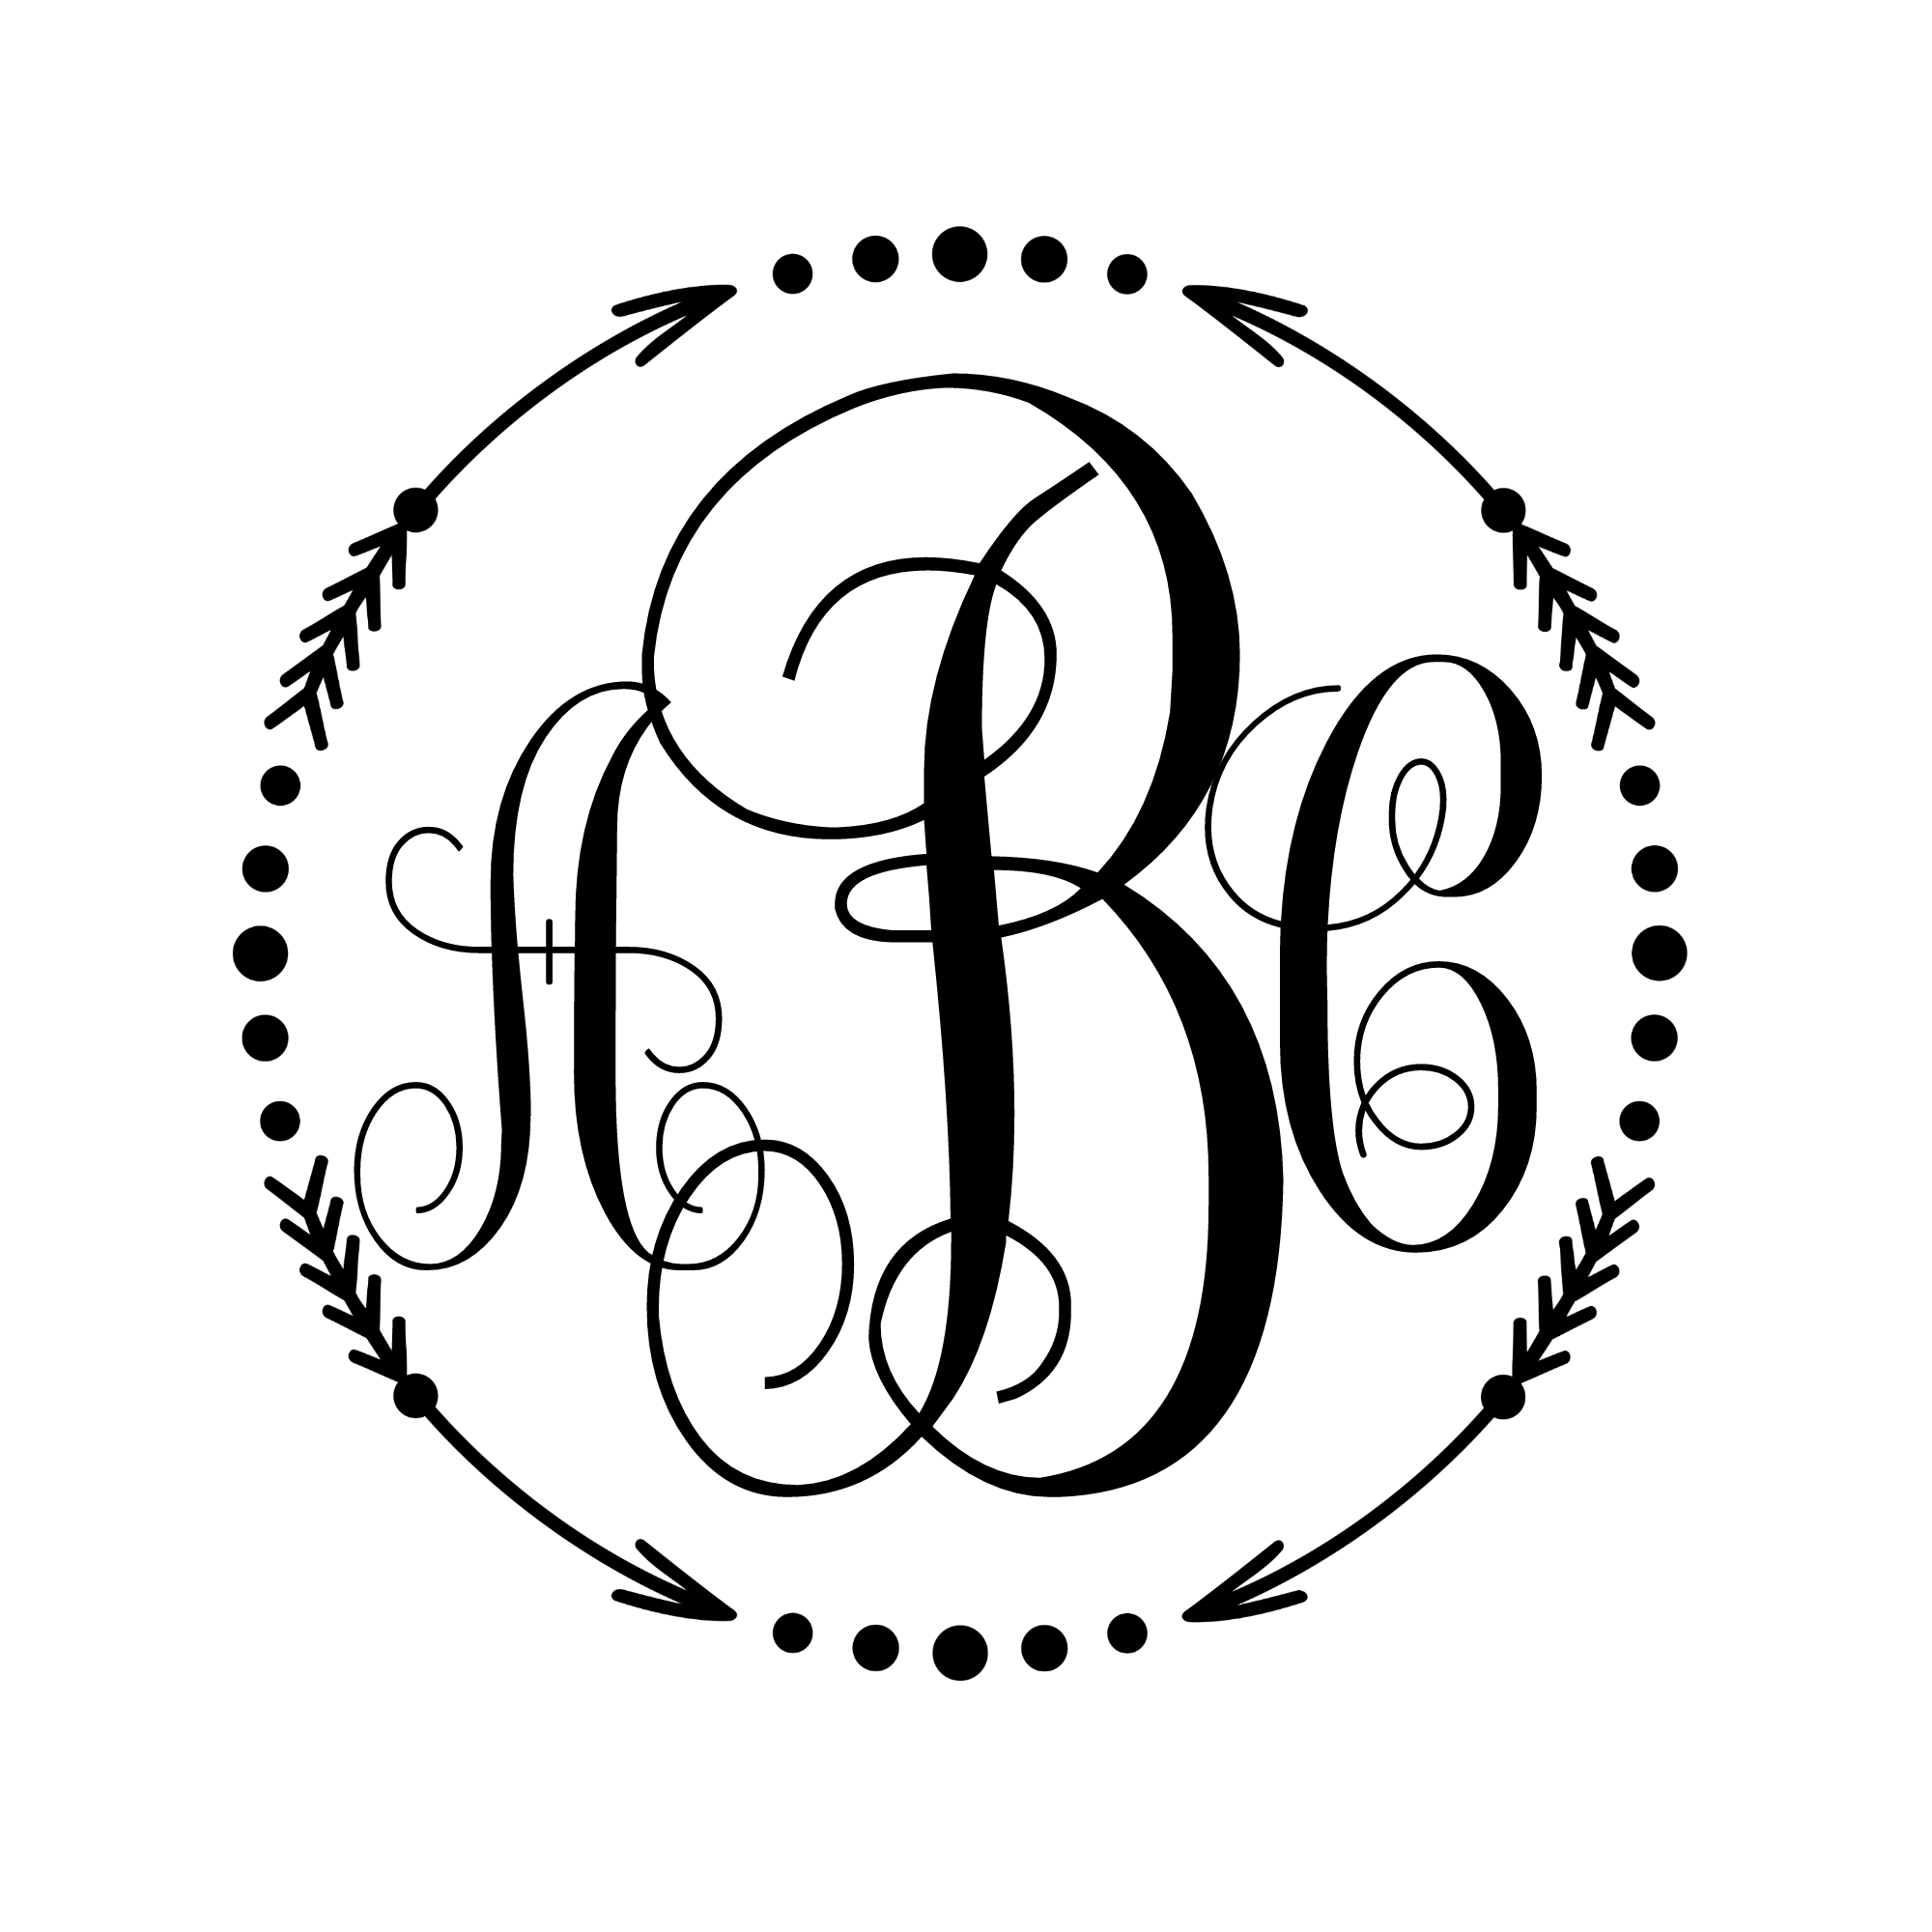 Circle dots png. Monogram decal arrow or